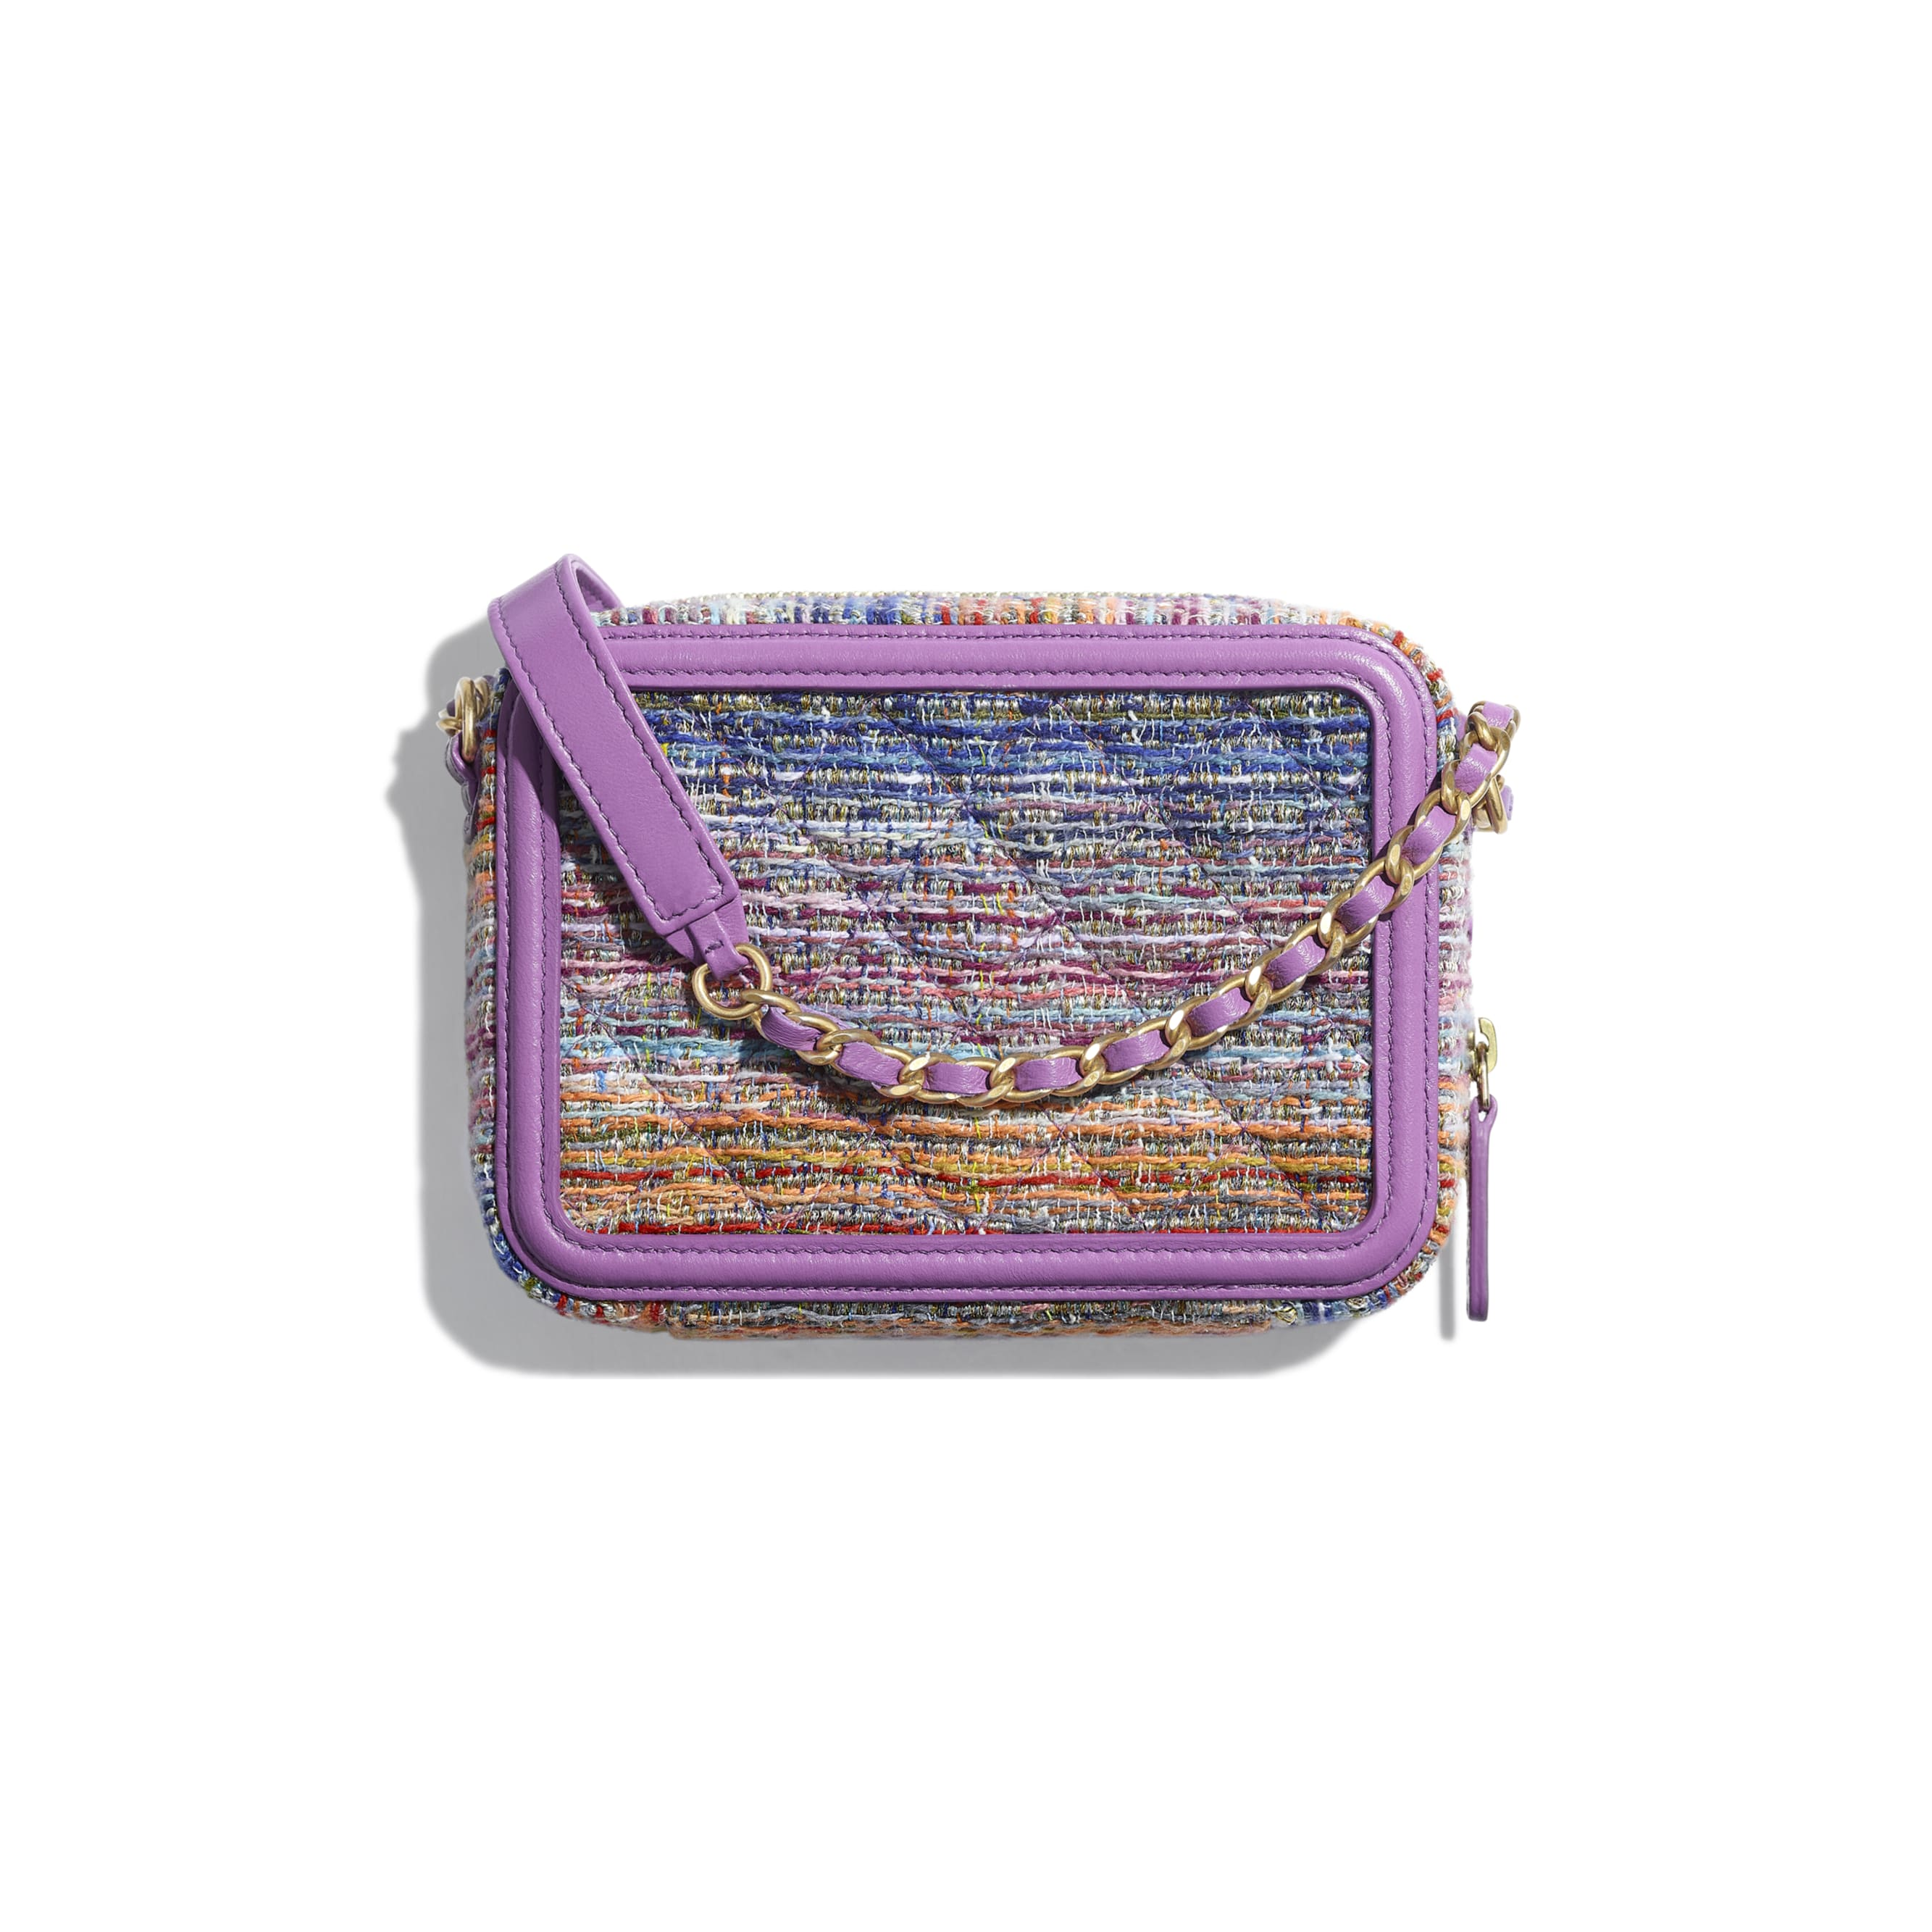 Clutch With Chain - Multicolour - Tweed, Calfskin & Gold-Tone Metal - Alternative view - see standard sized version